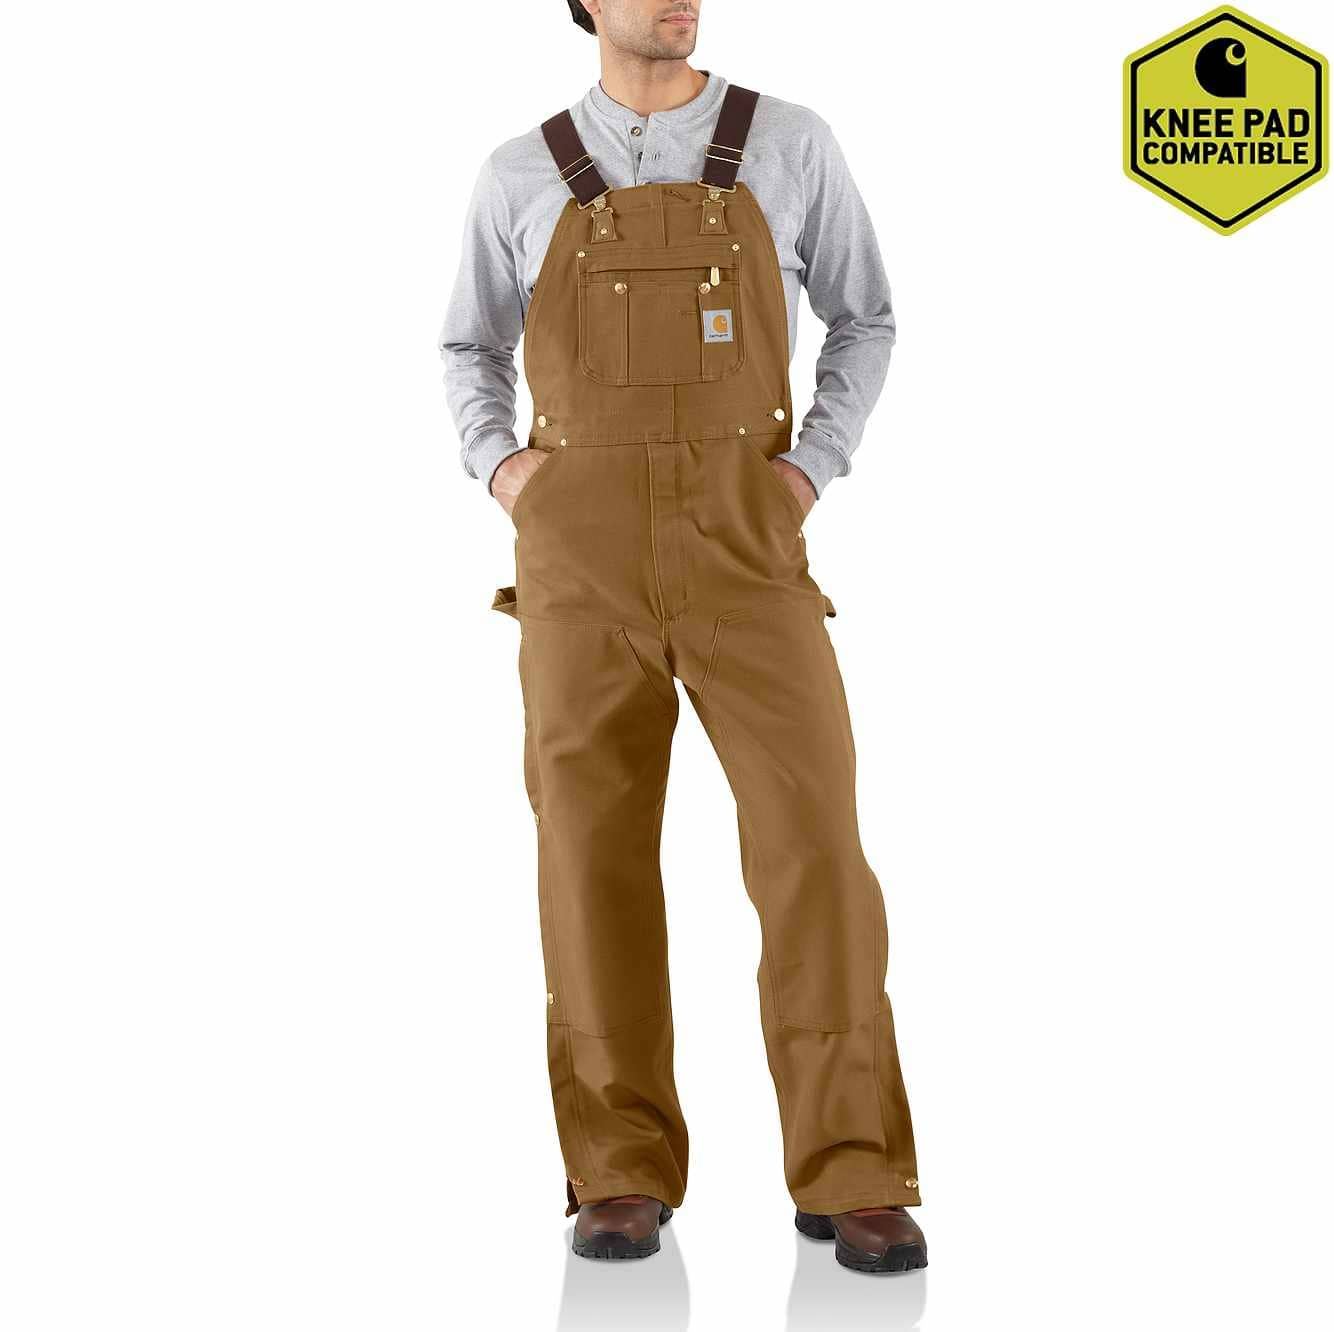 Picture of Duck Zip-To-Thigh Bib Overall/Unlined in Carhartt Brown